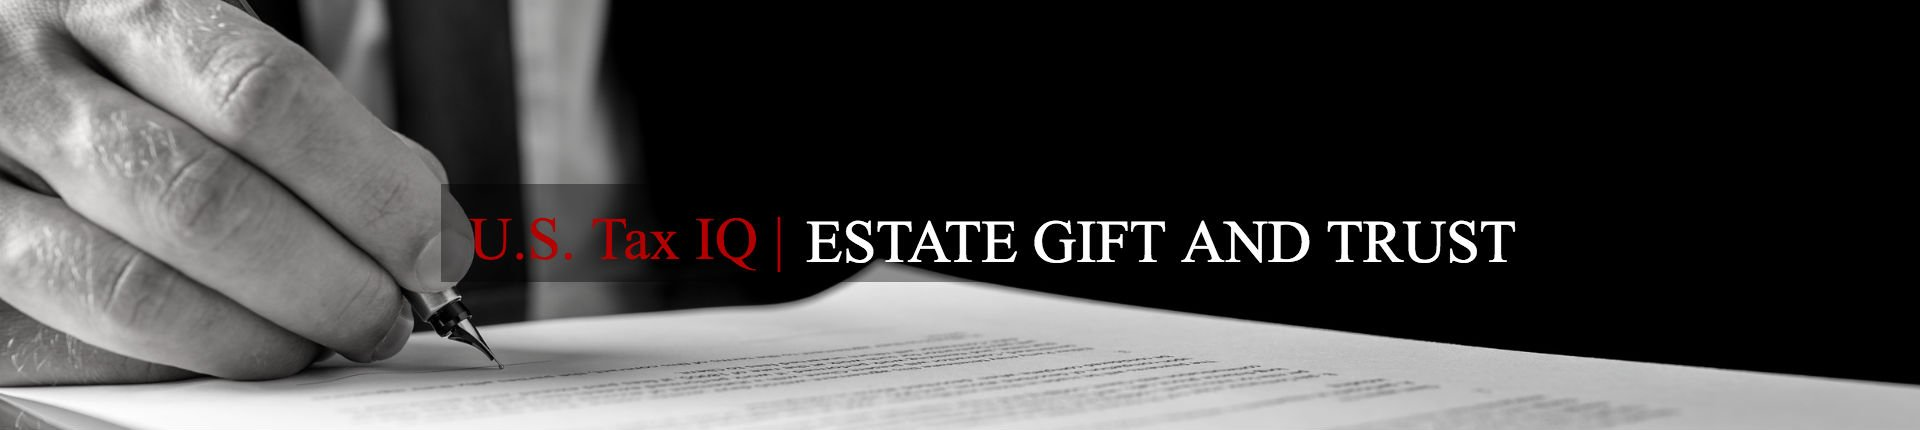 US Estate Gift Trust Tax Services